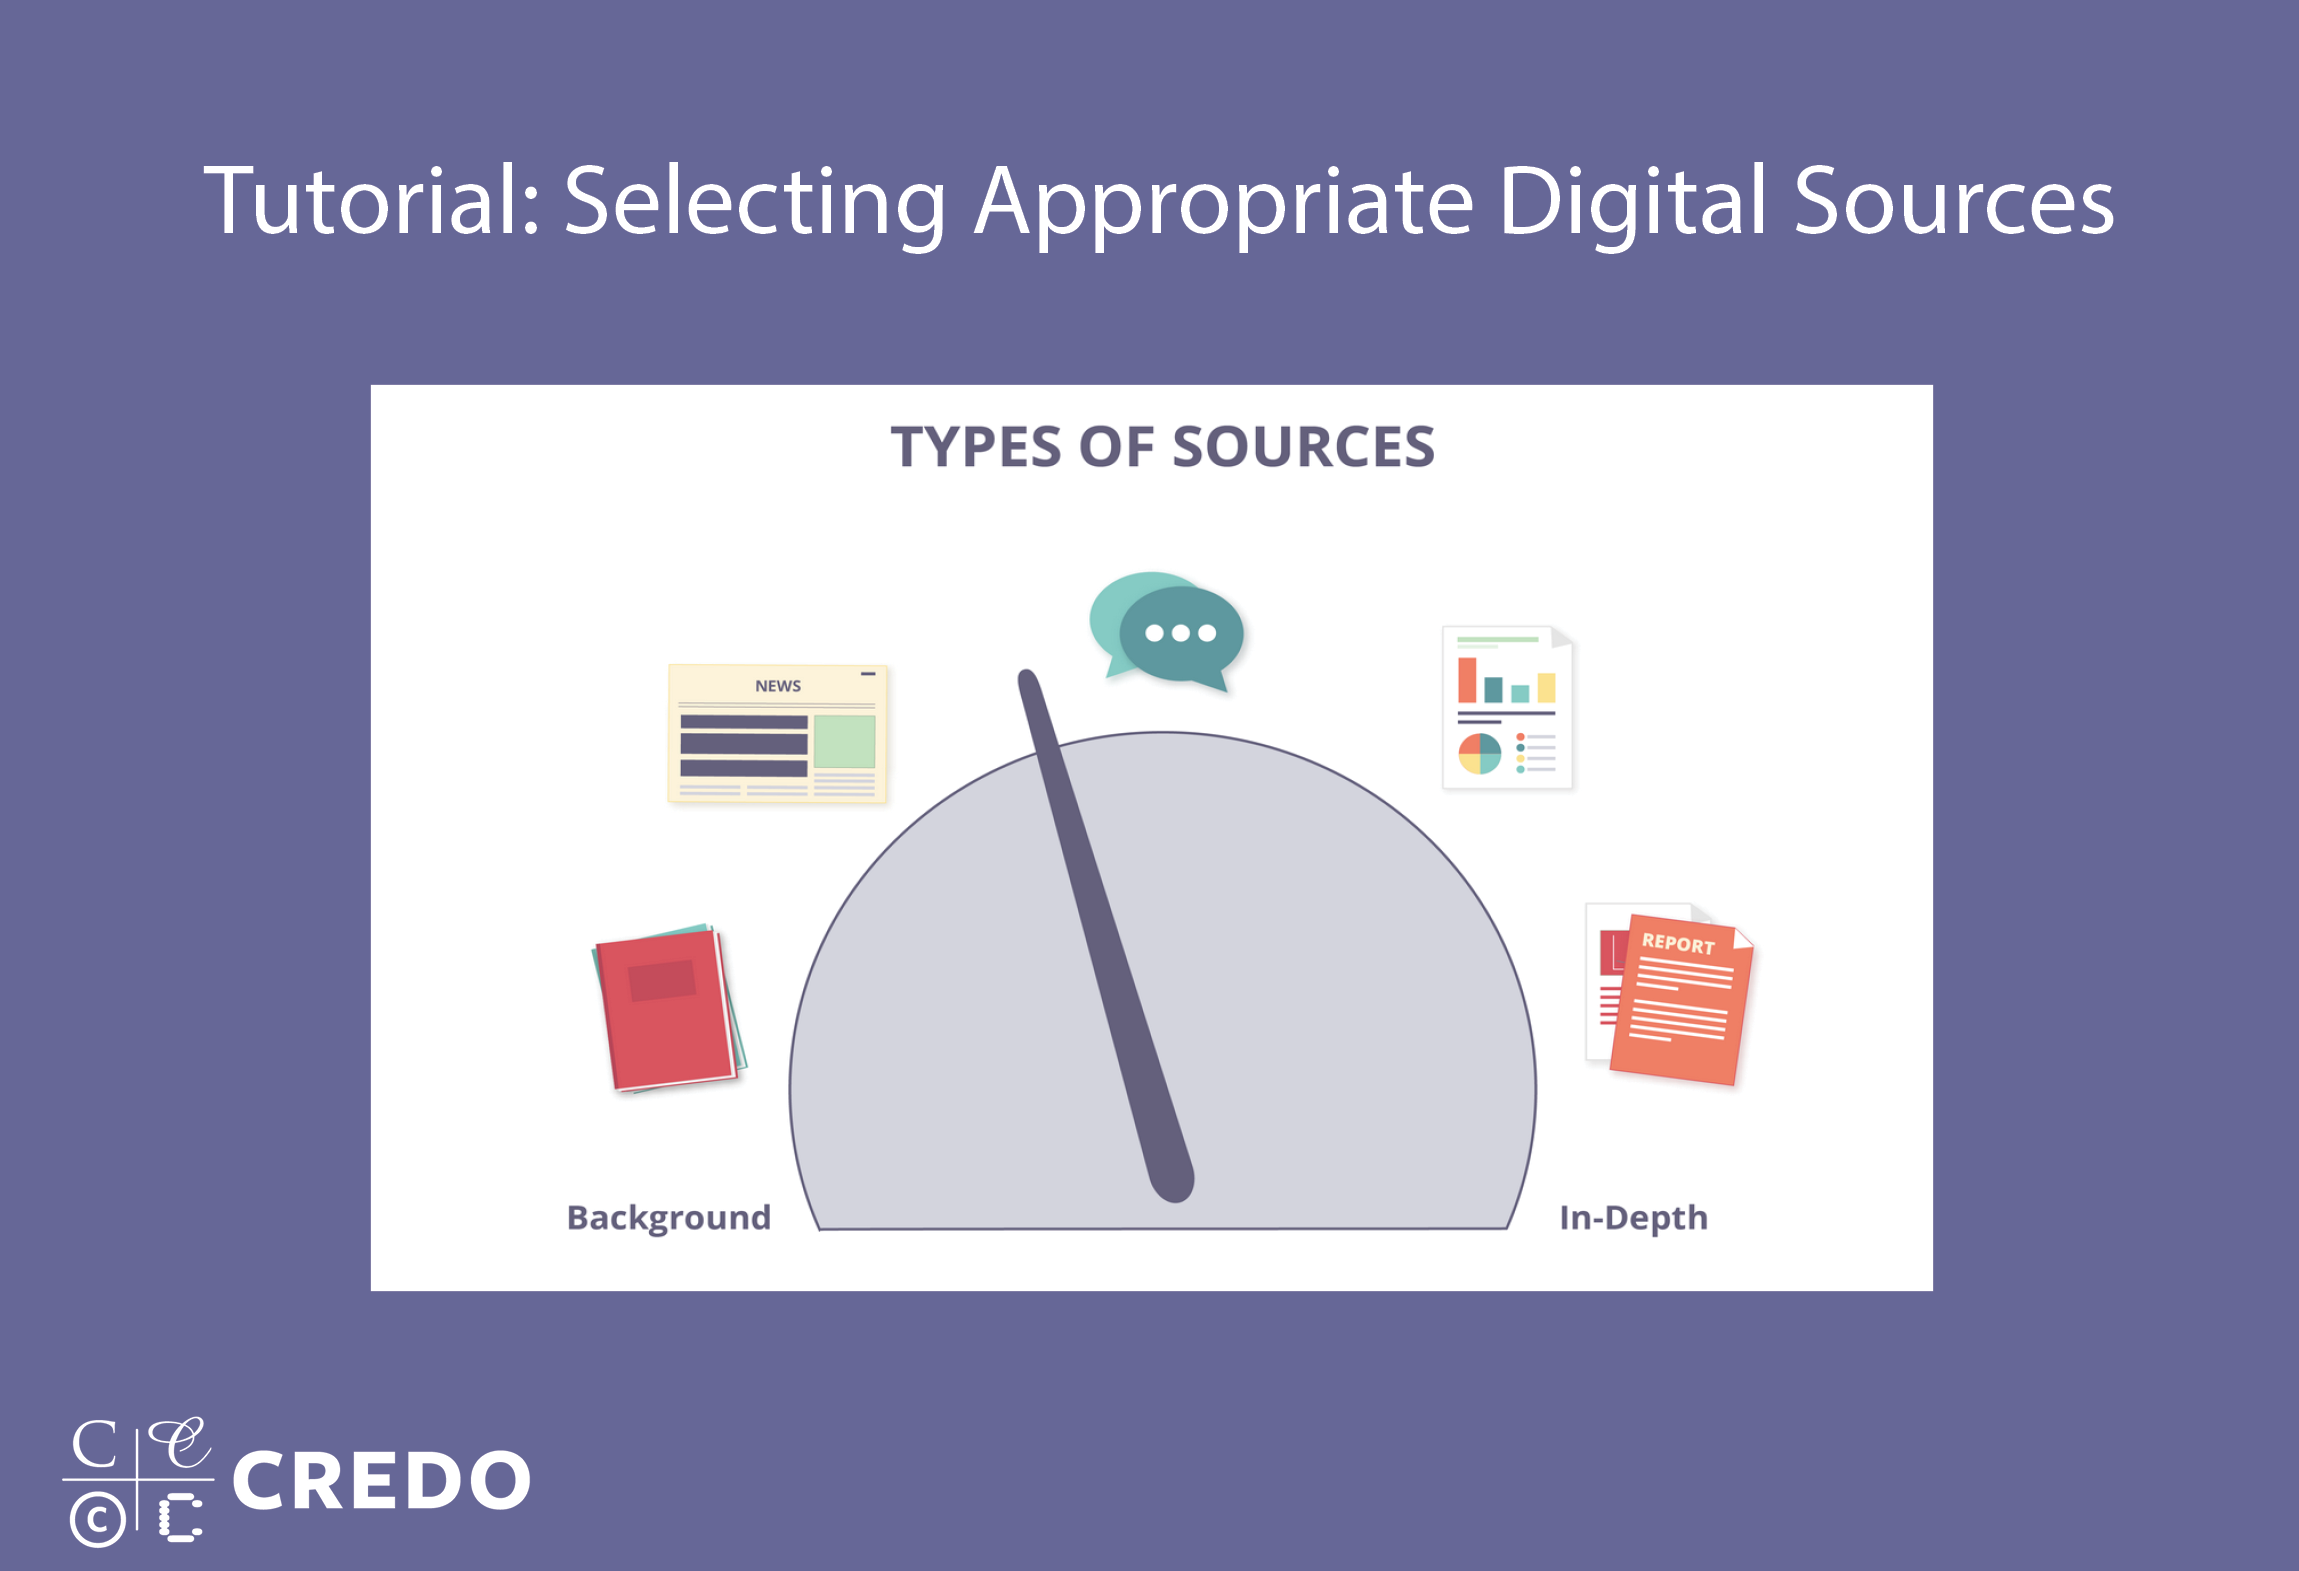 Tutorial: Selecting Appropriate Digital Sources